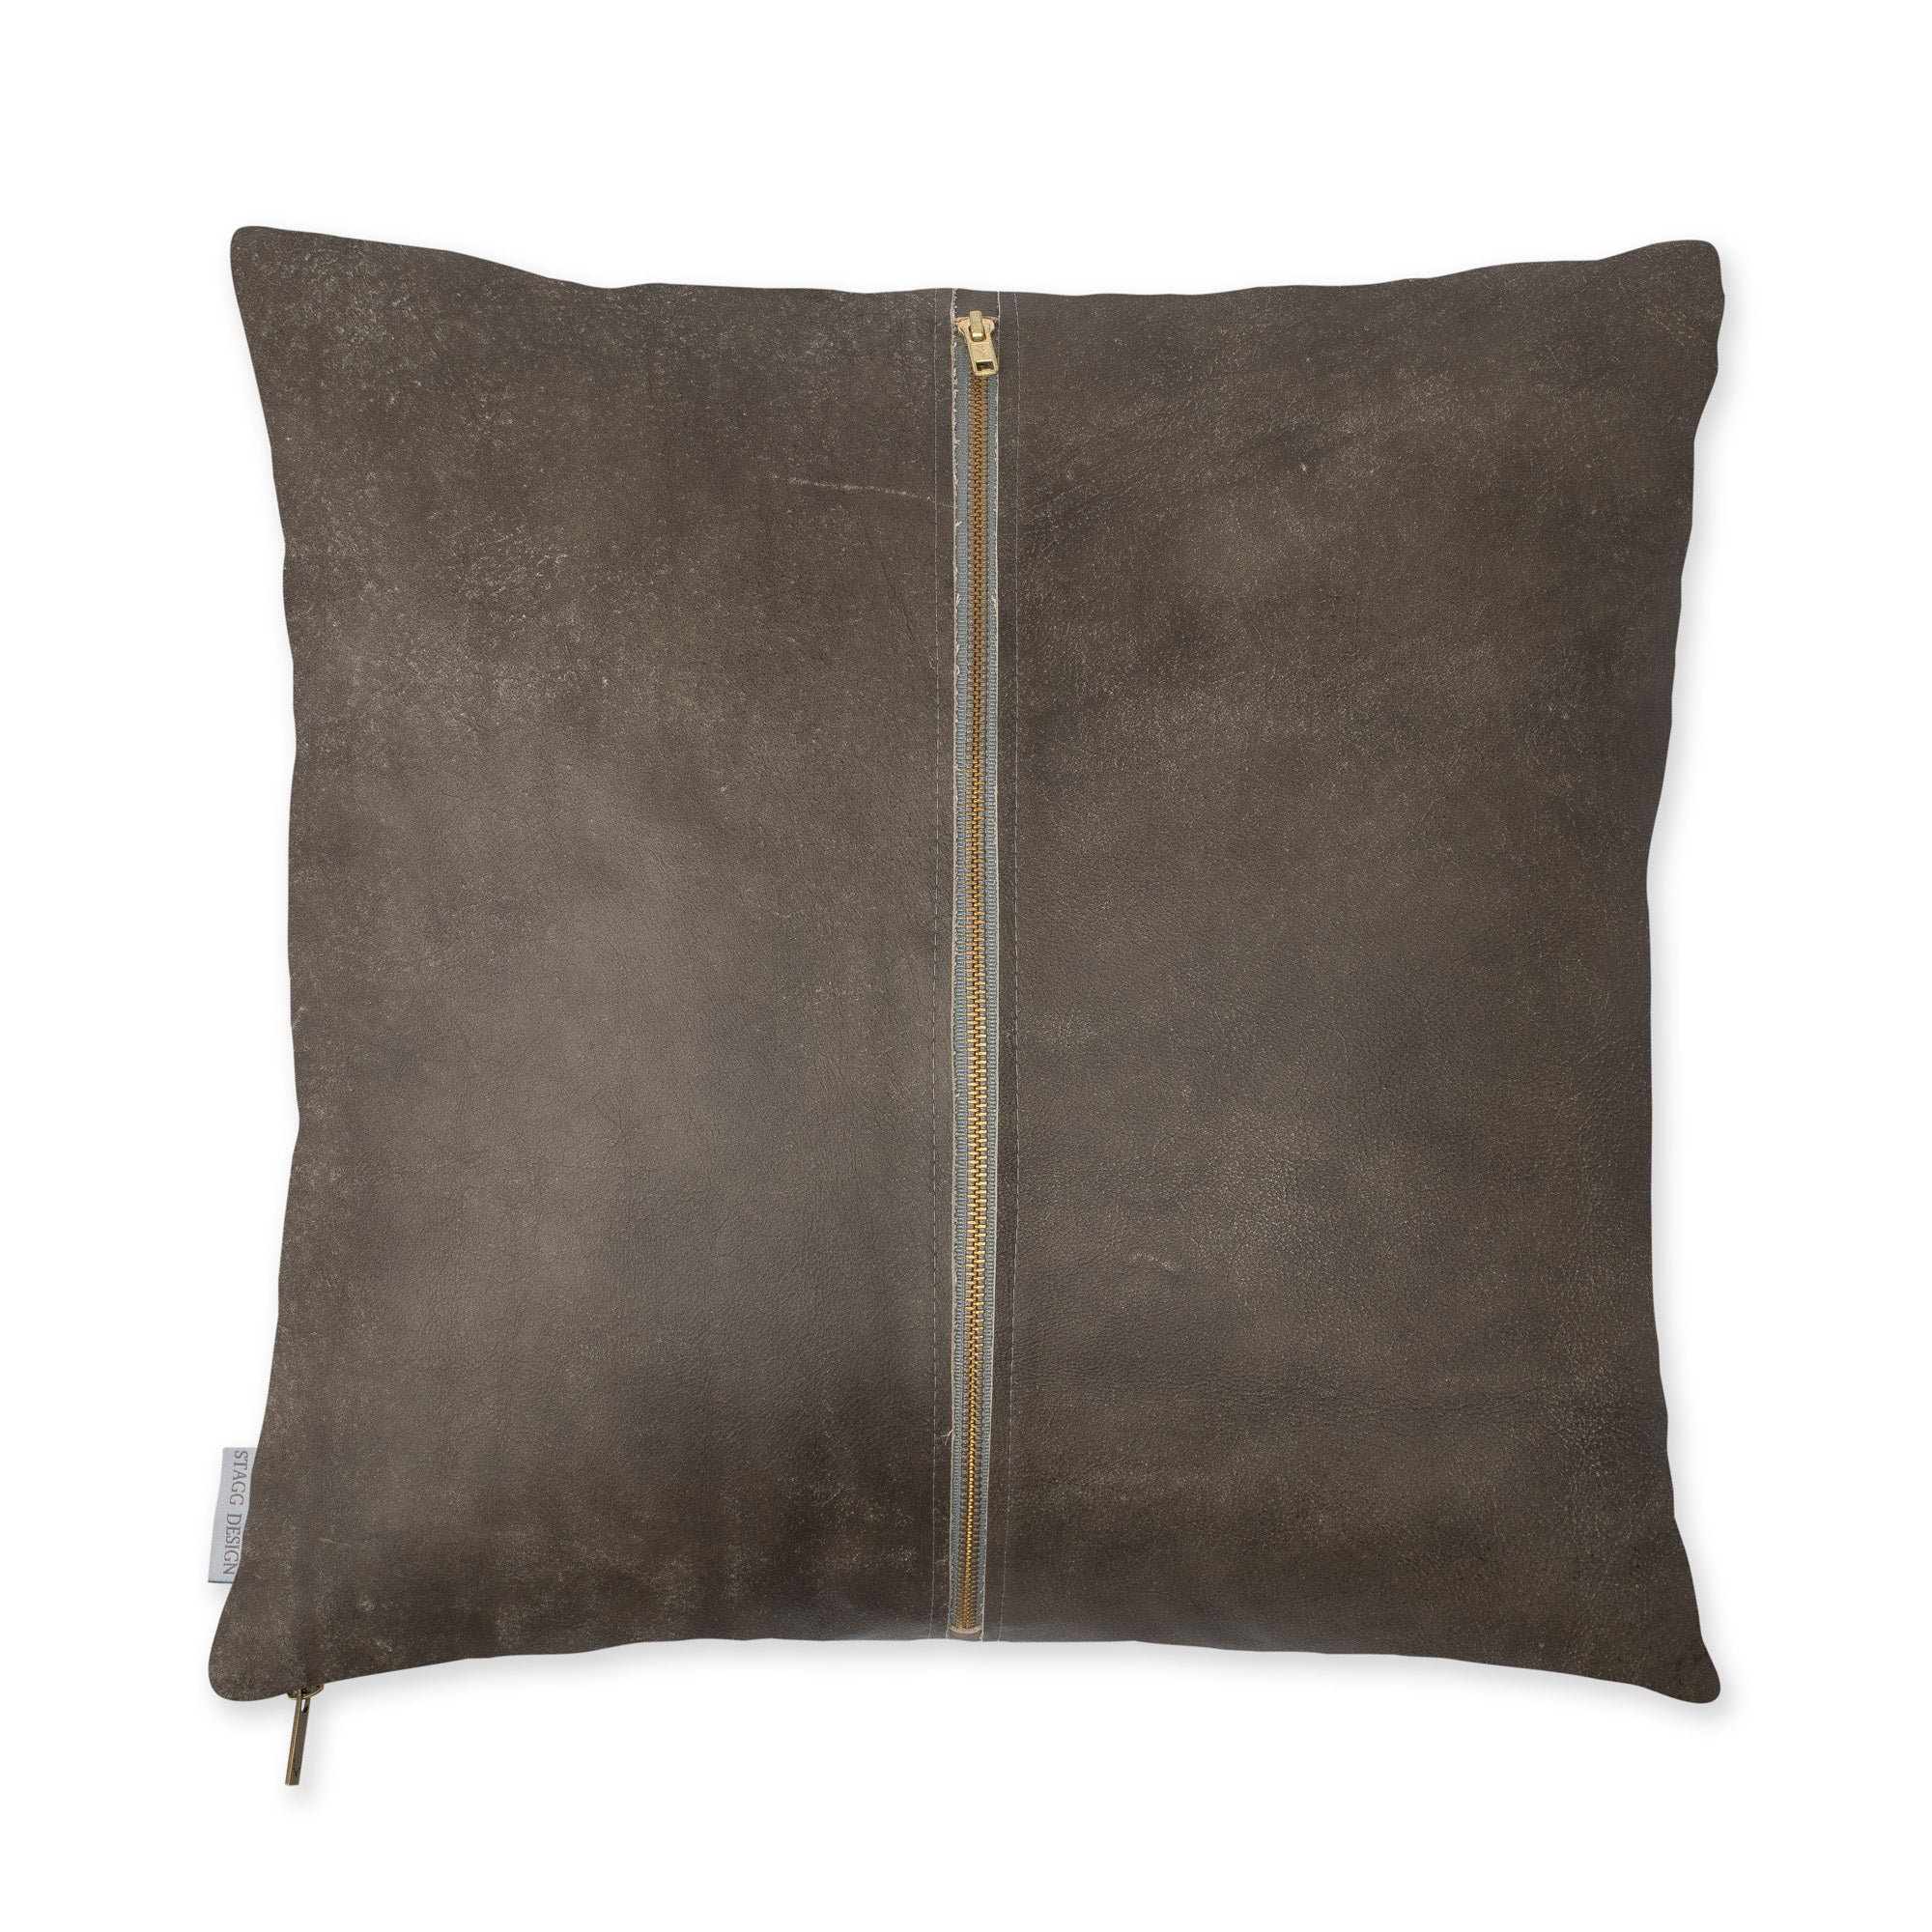 Signature Leather Pillow - Weathered Grey